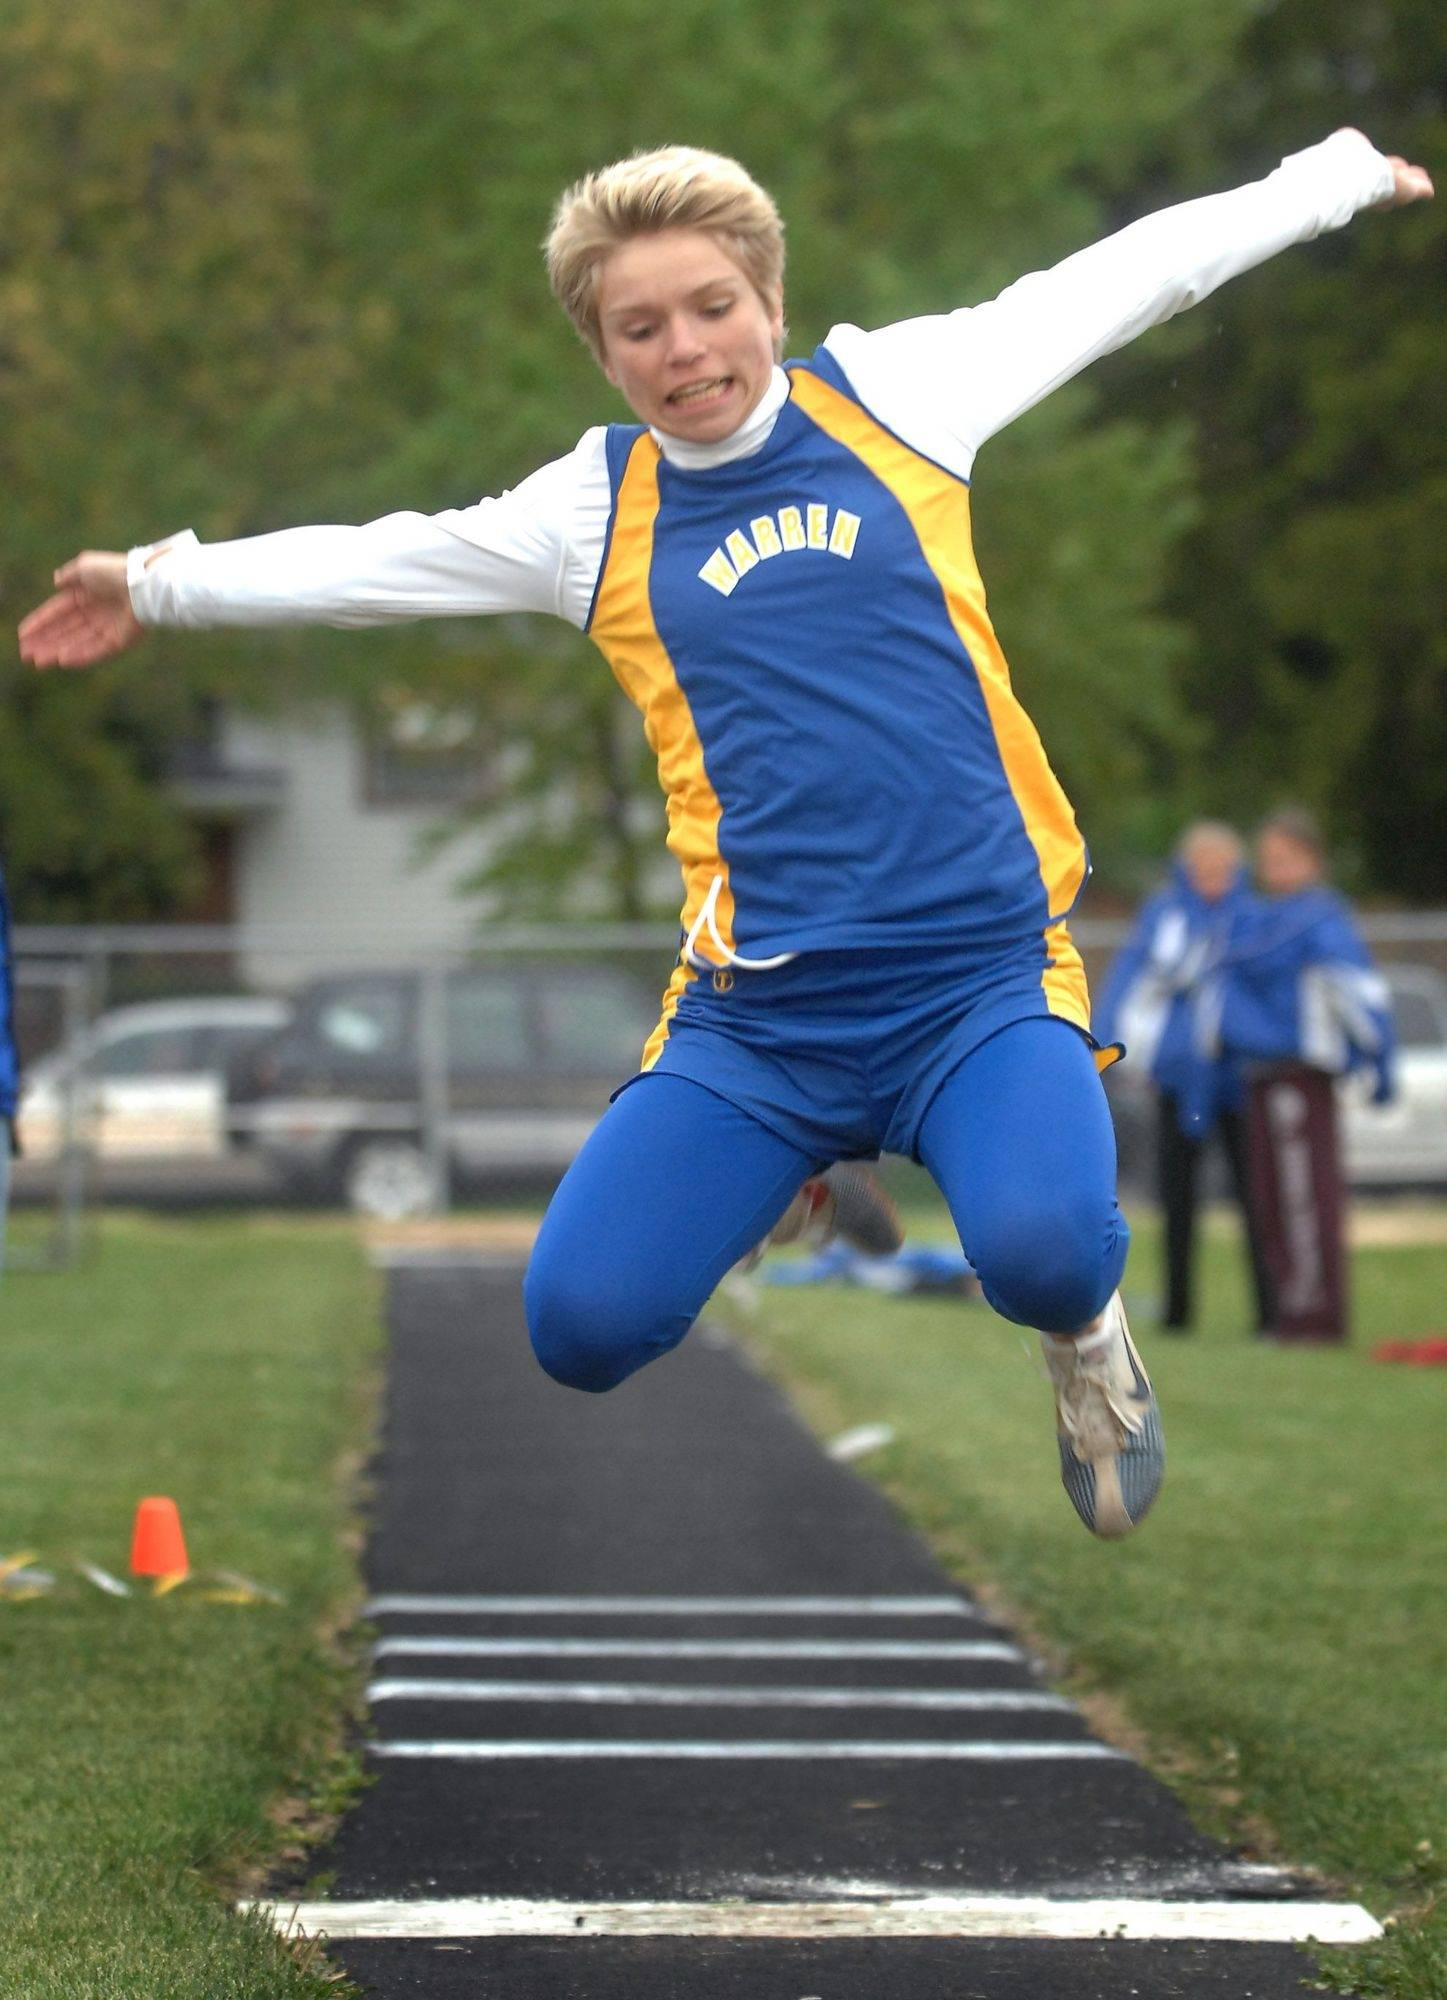 Warren's Amber Cook competes in the triple jump event at the North Suburban Conference track meet Thursday in Mundelein. Cook won the event.